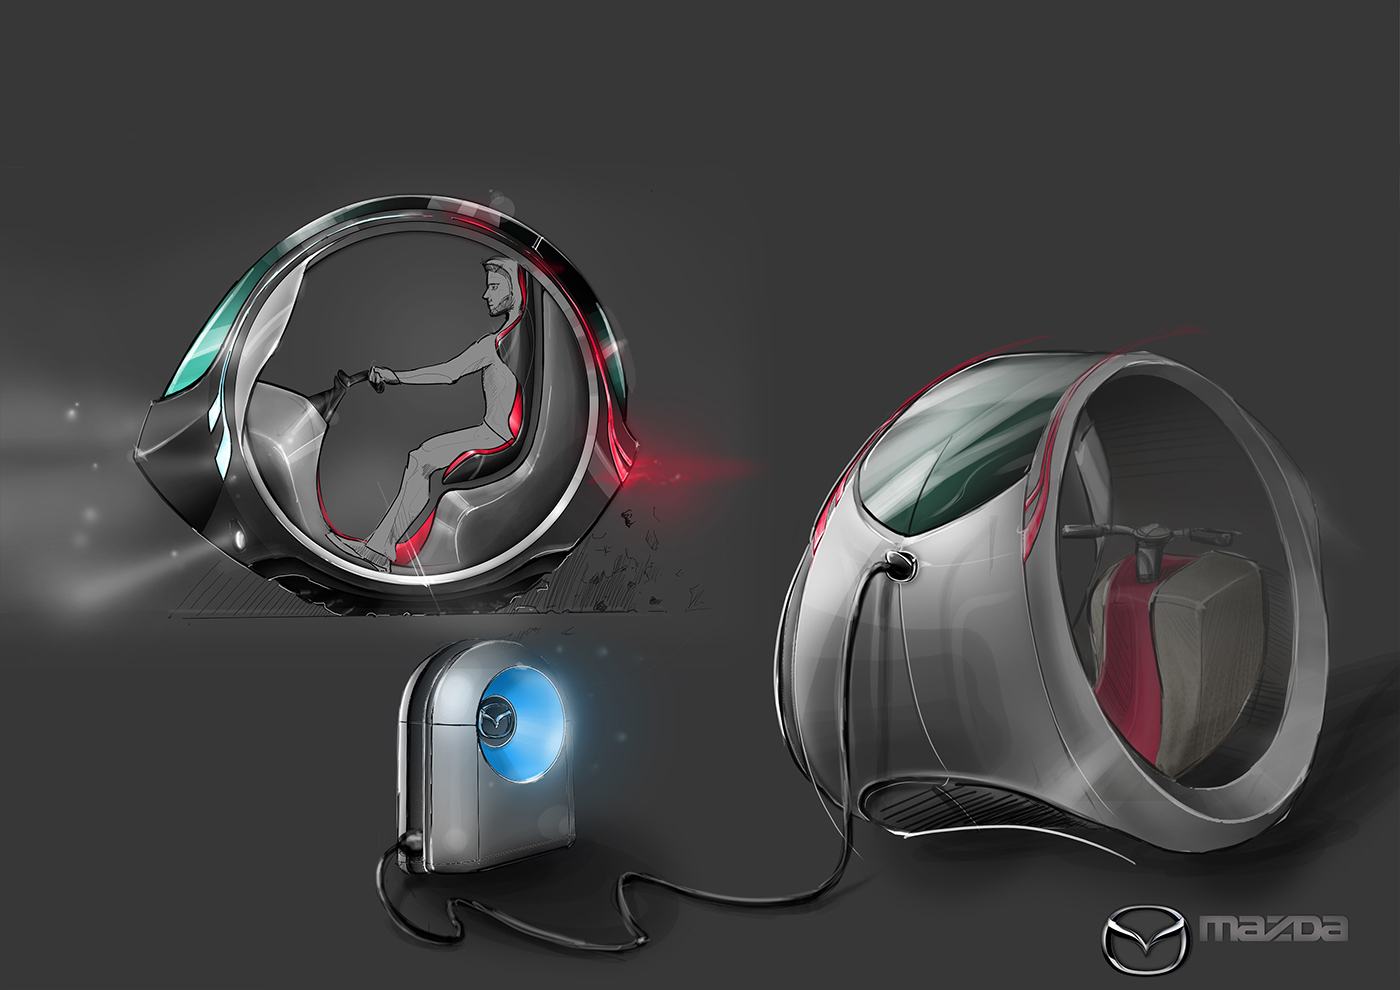 Mazda electric scooter concept